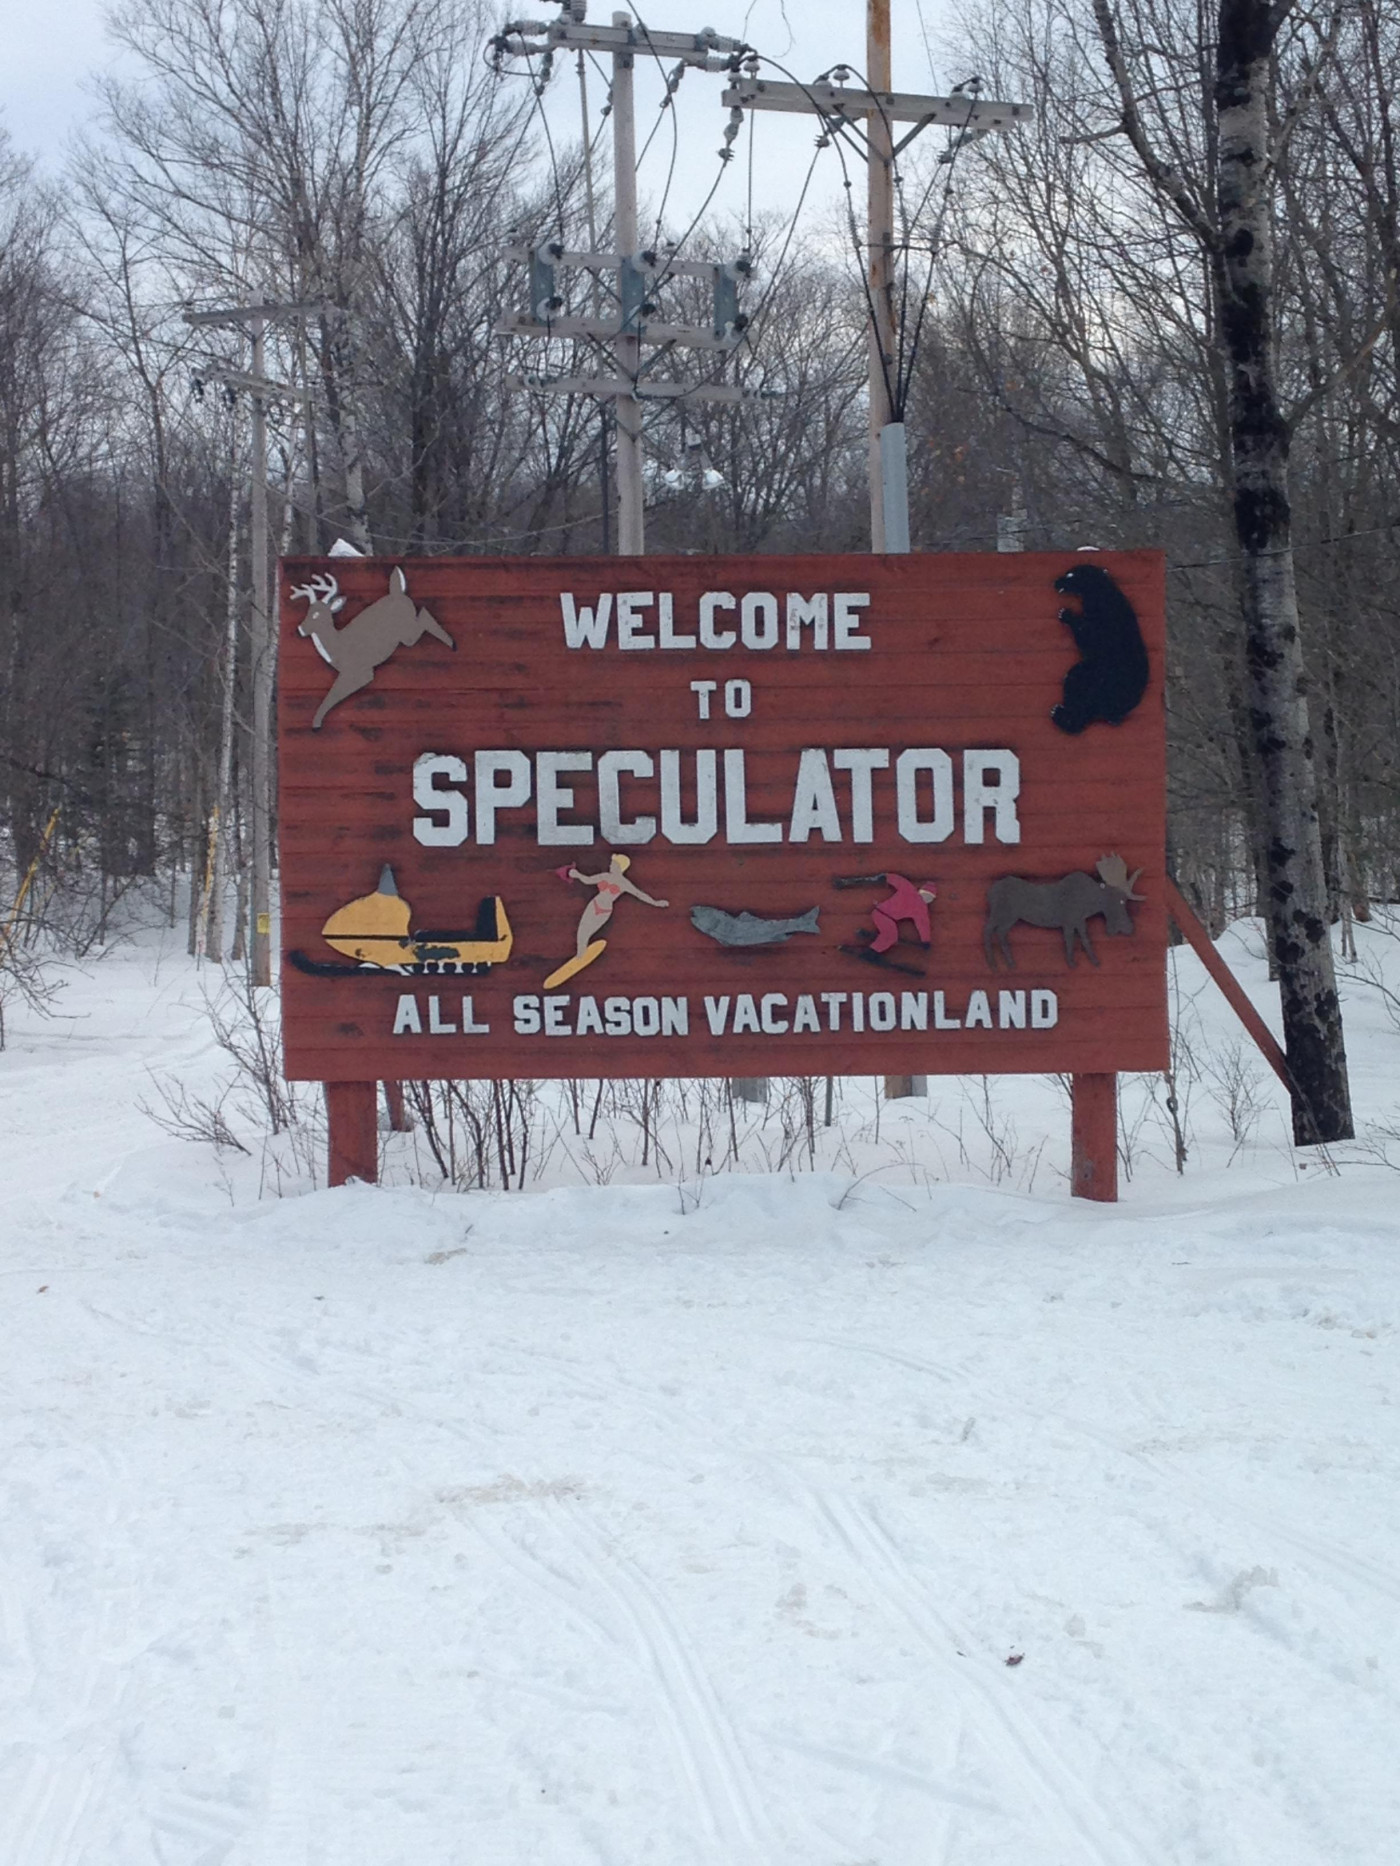 Welcome to Speculator!